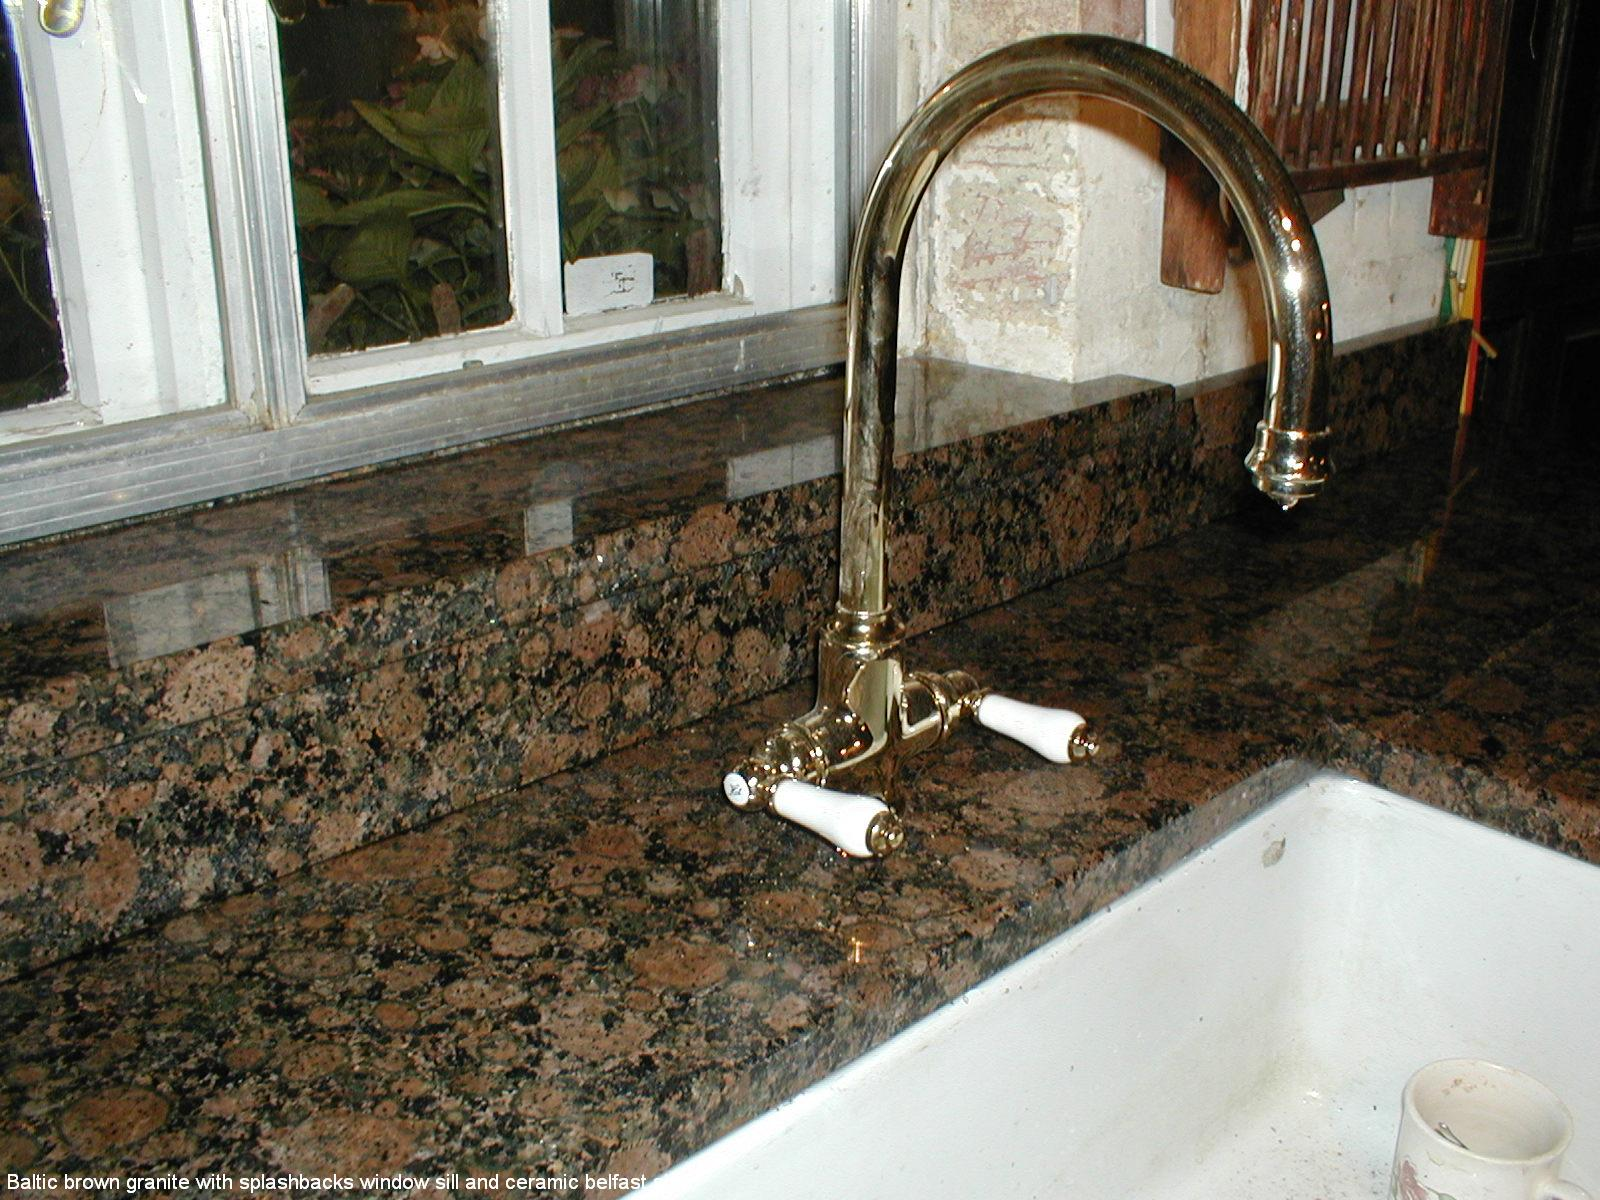 Ceramic Window Sills : Baltic brown granite with splashbacks window sill and